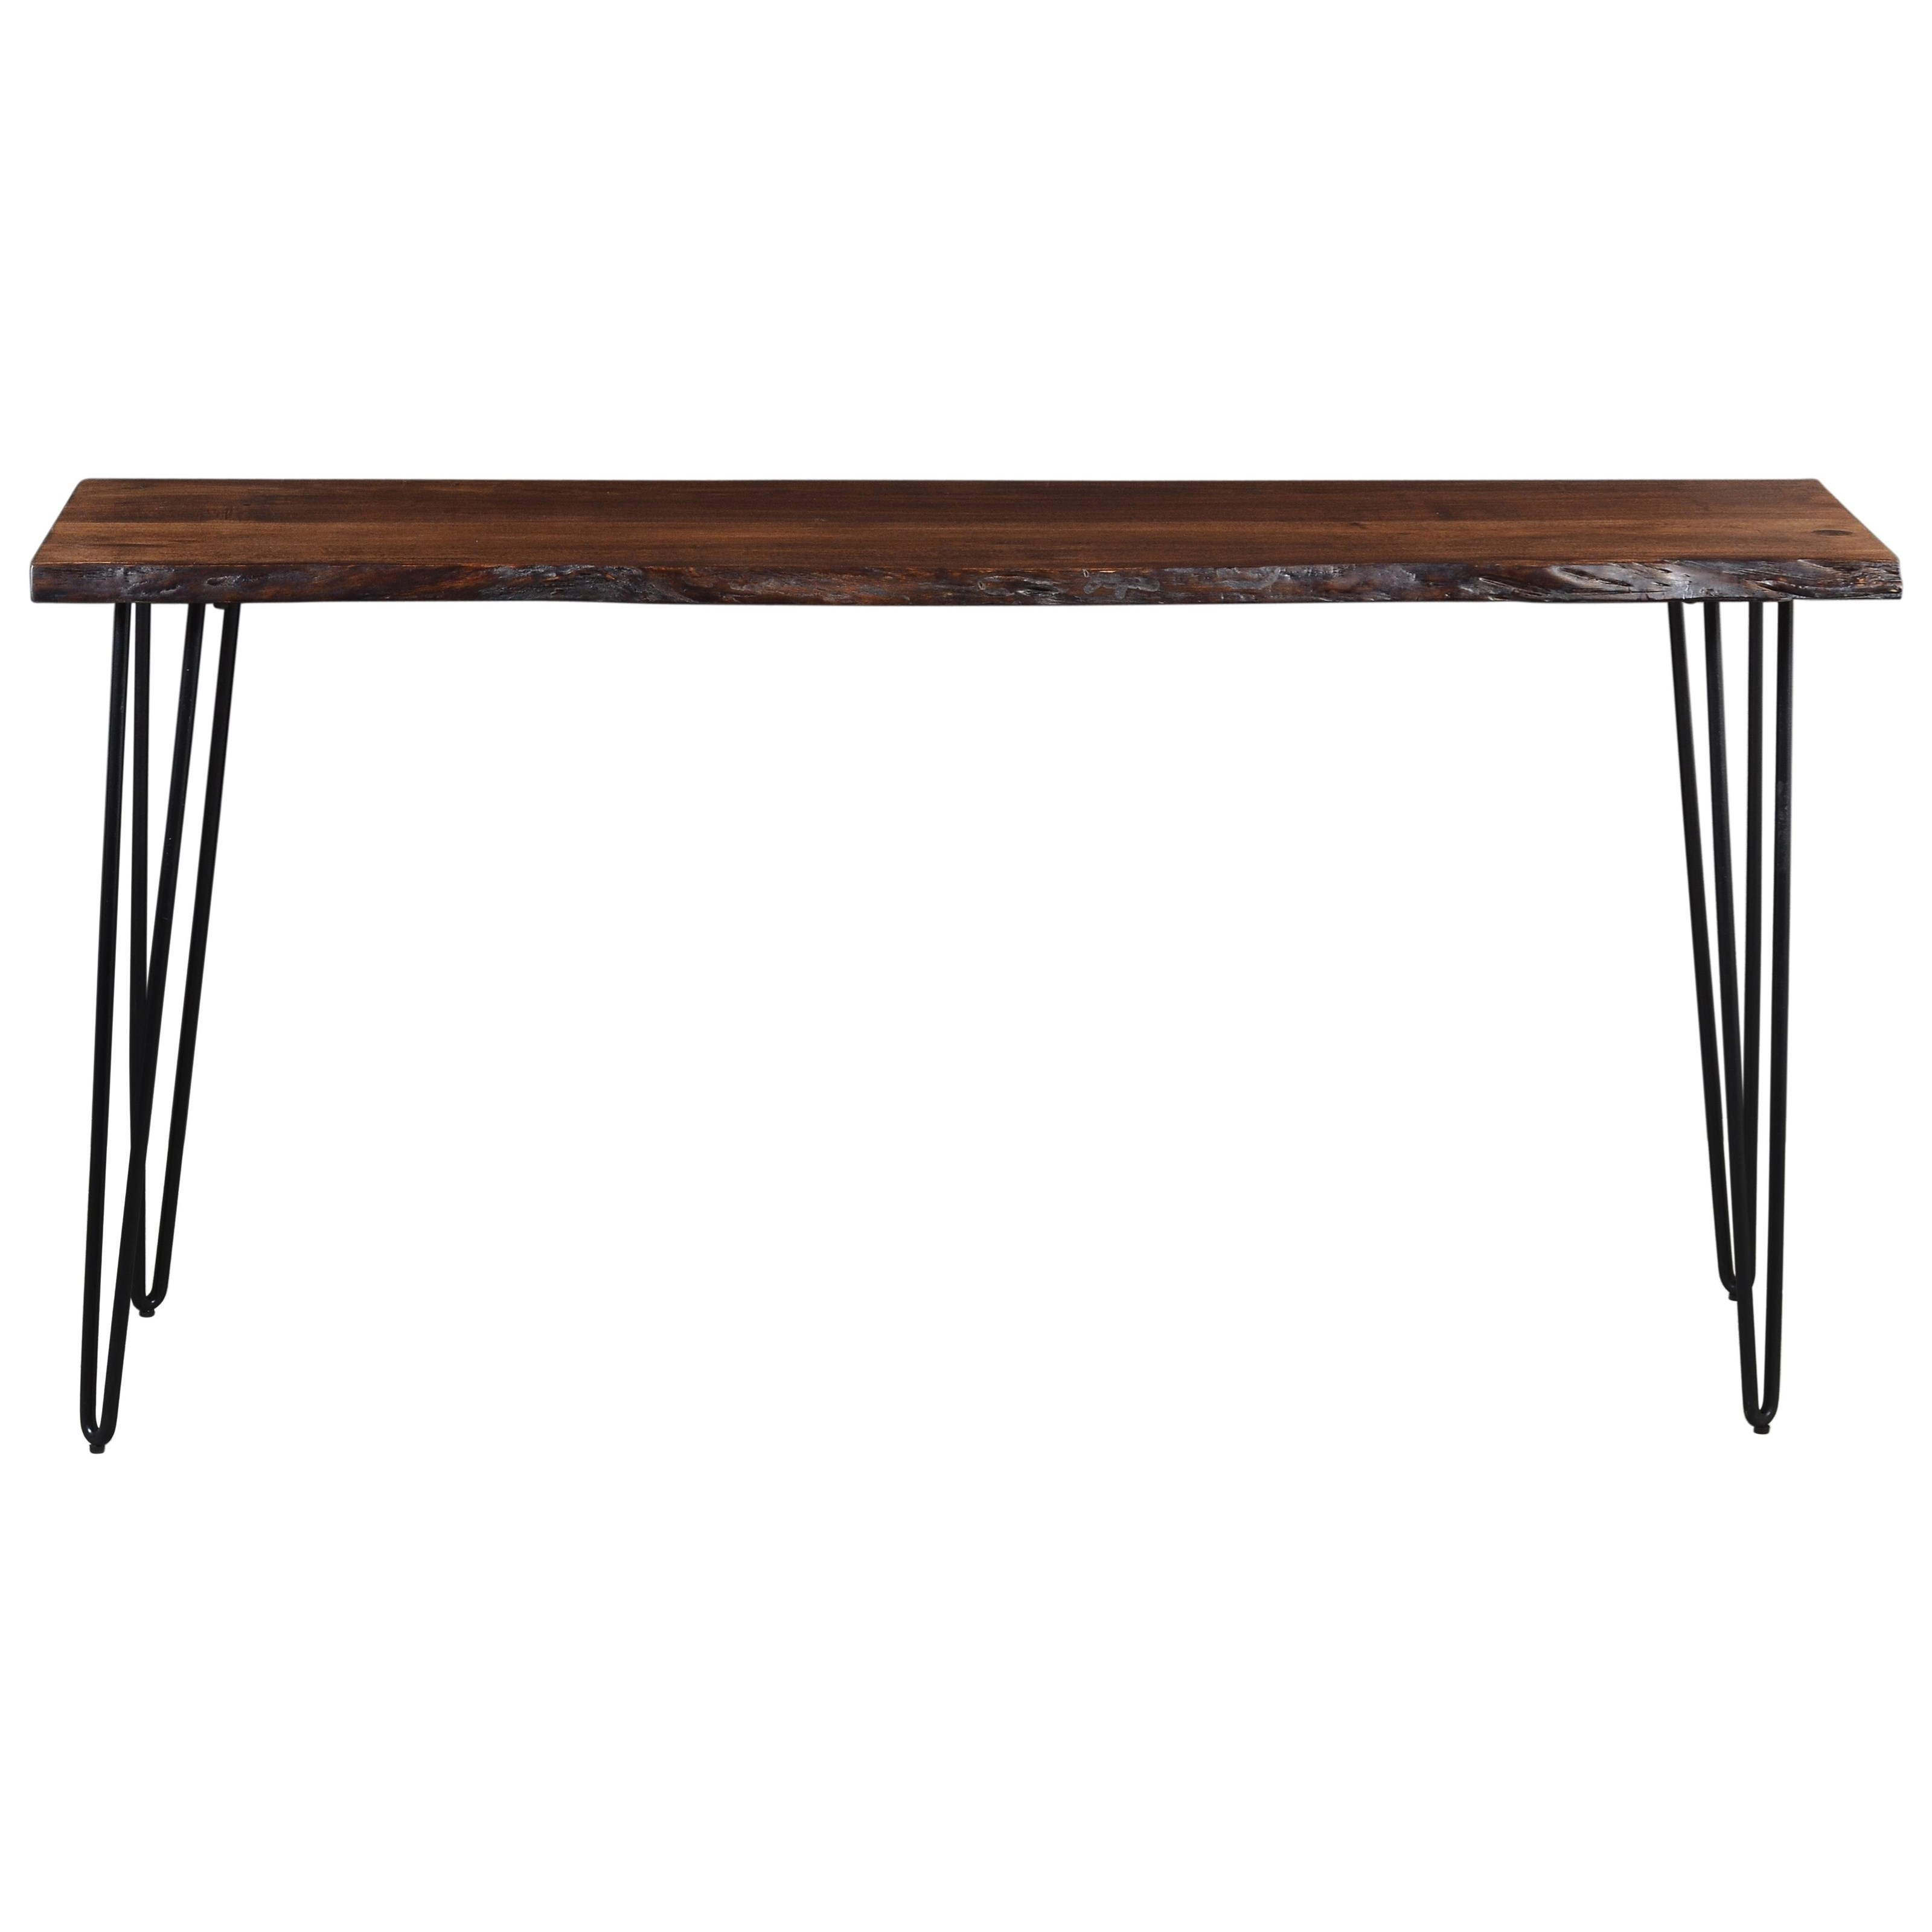 Nature's Edge Sofa Counter Dining Table by Jofran at Stoney Creek Furniture